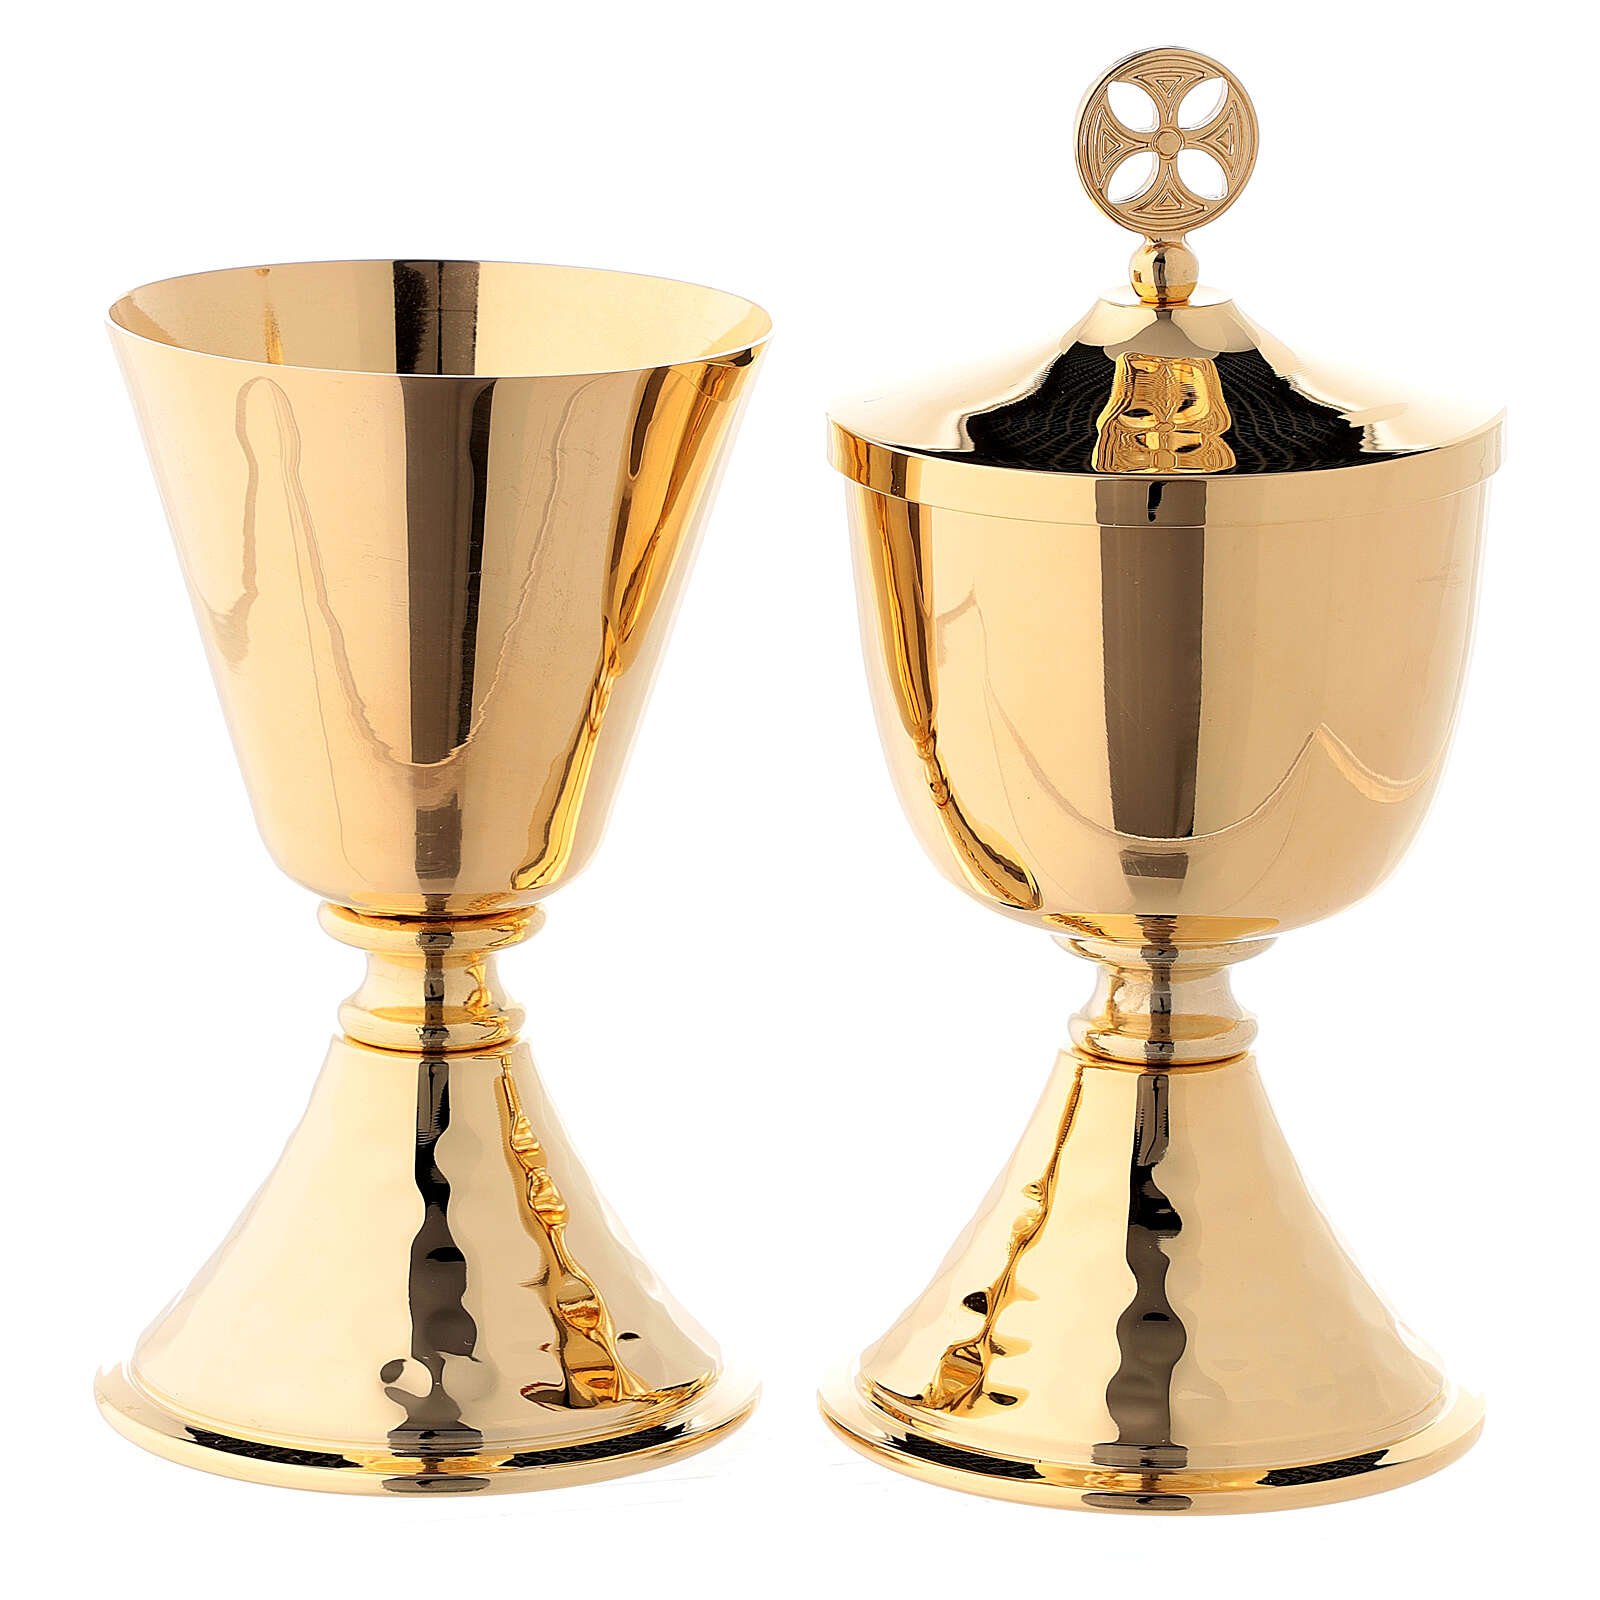 Small chalice and ciborium with simple node and hammered base in 24-karat gold plated brass 4